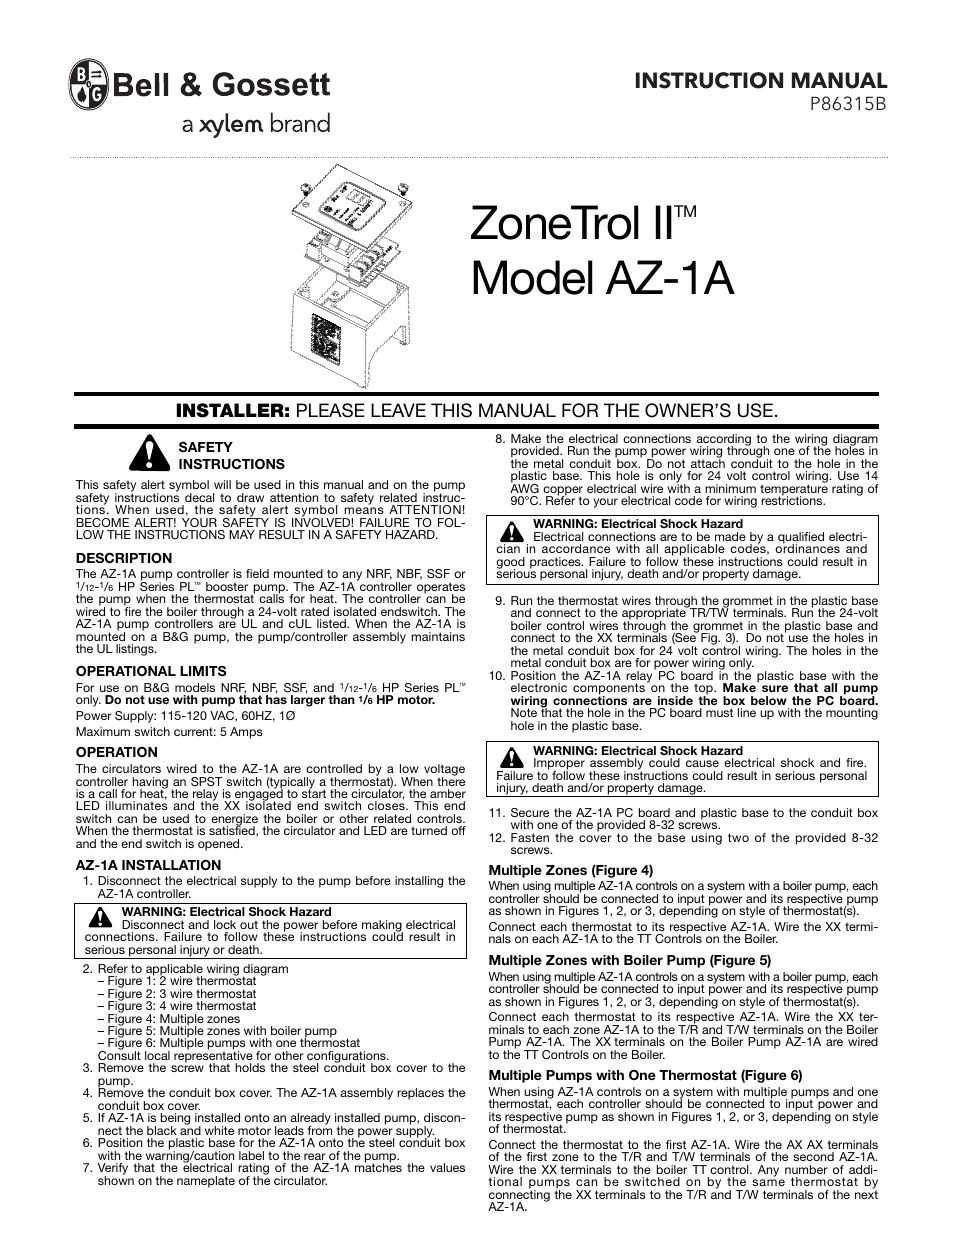 bell gossett p86315b zonetrol ii az 1a user manual 2 pages